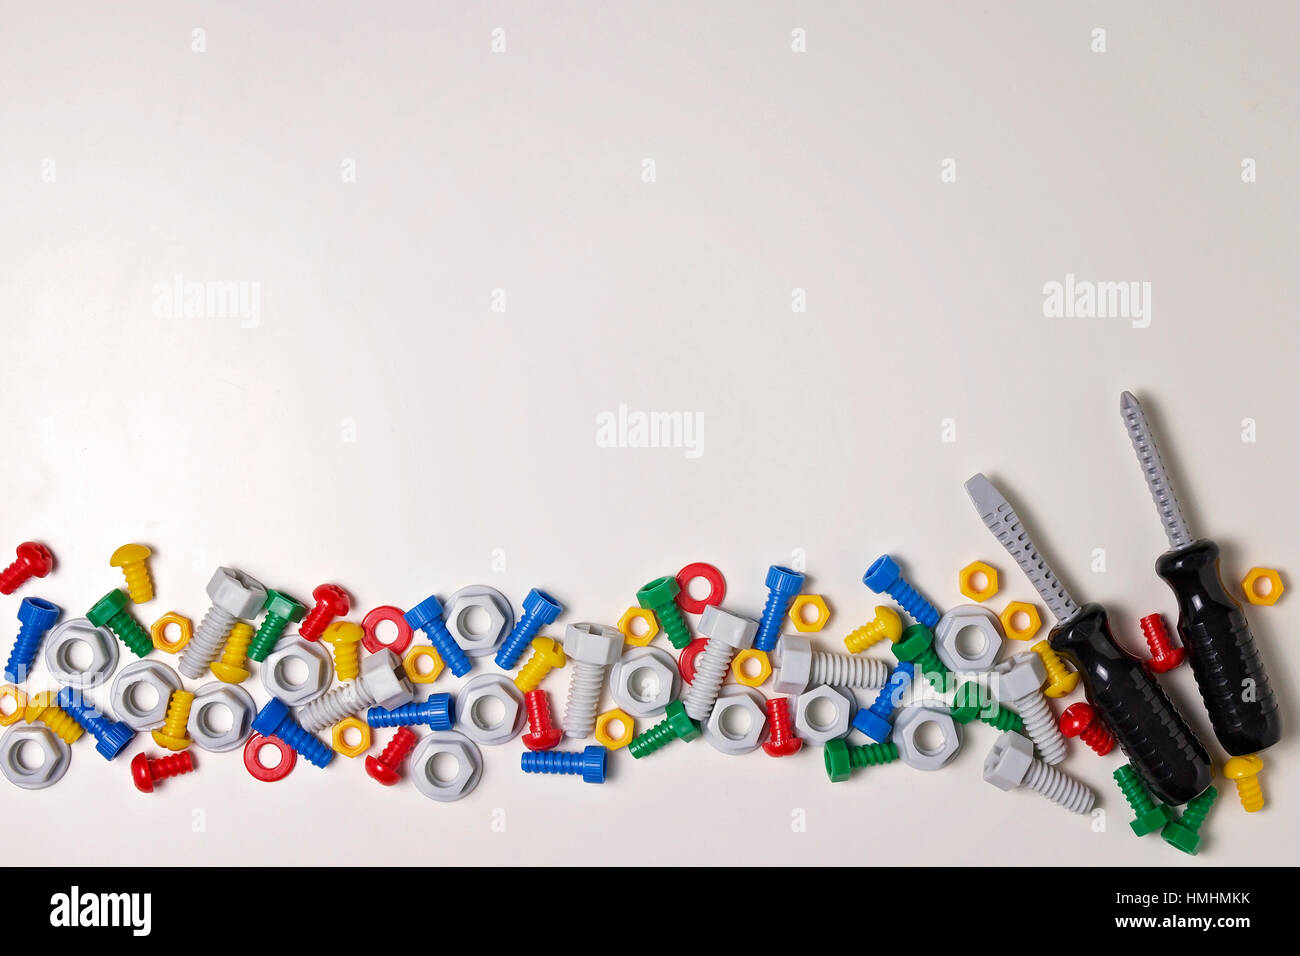 kids construction tools frame on white background colorful toys